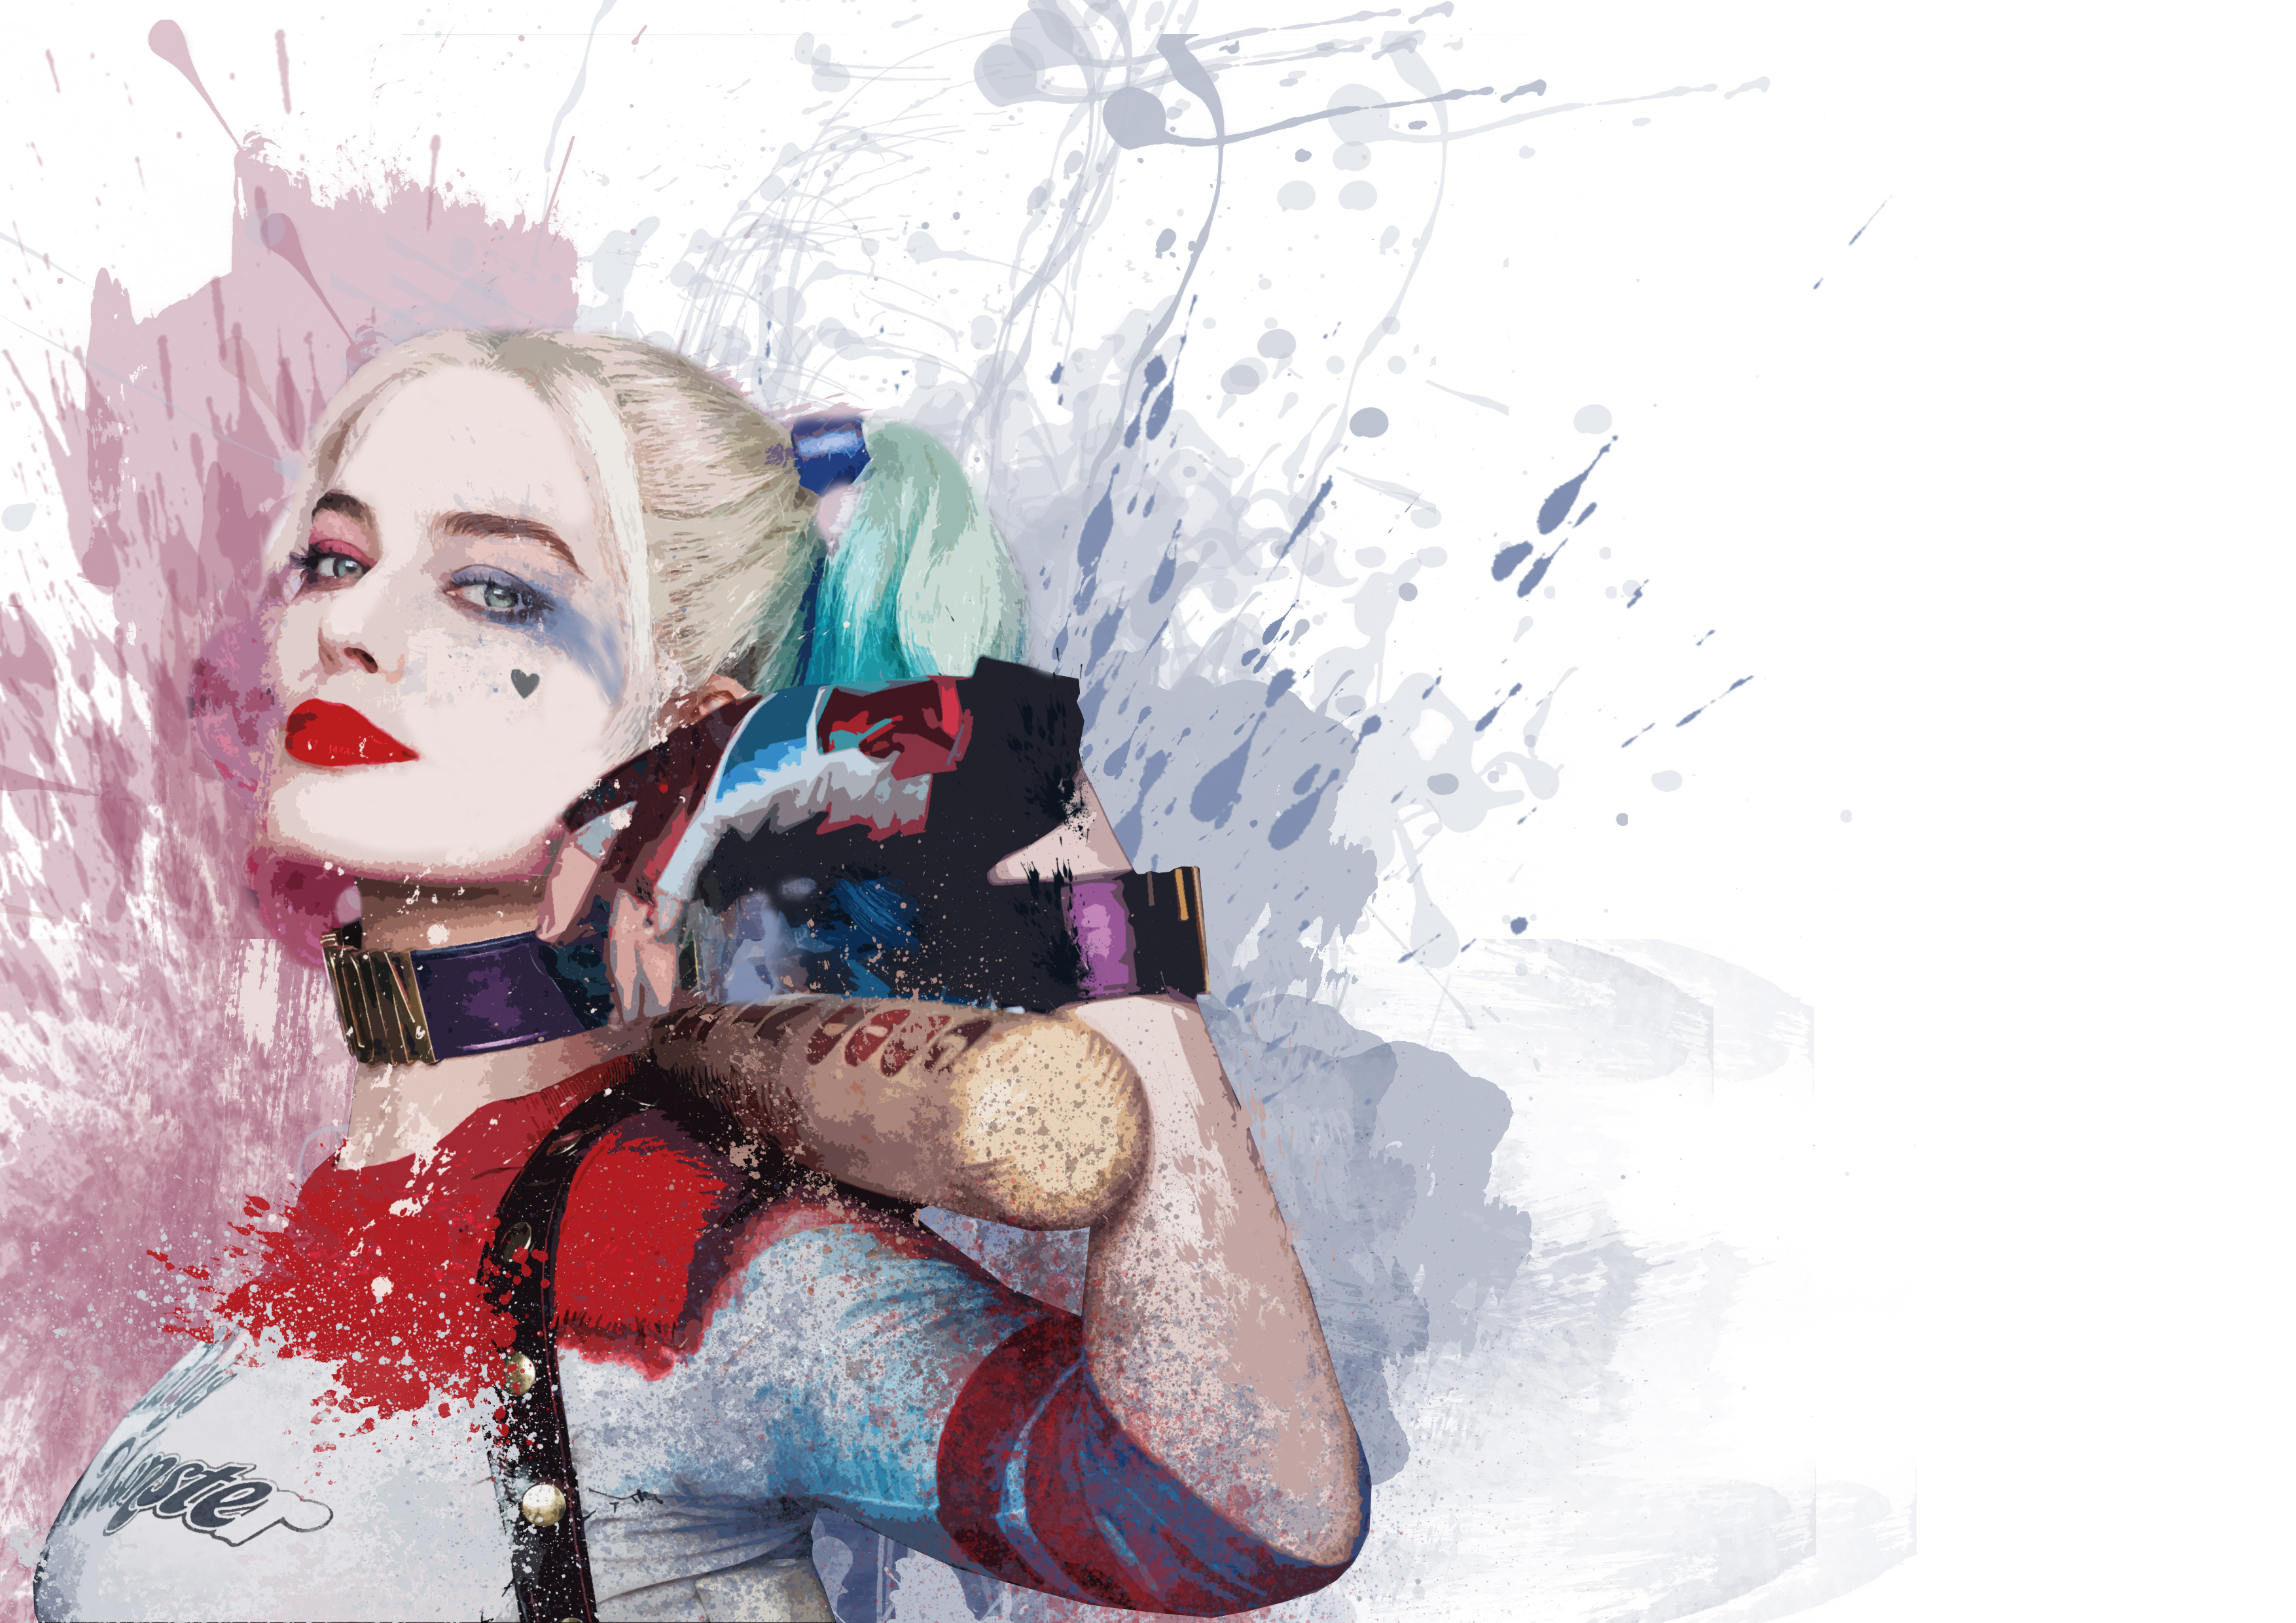 Harley quinn 4k art hd superheroes 4k wallpapers images - Harley quinn hd wallpapers for android ...